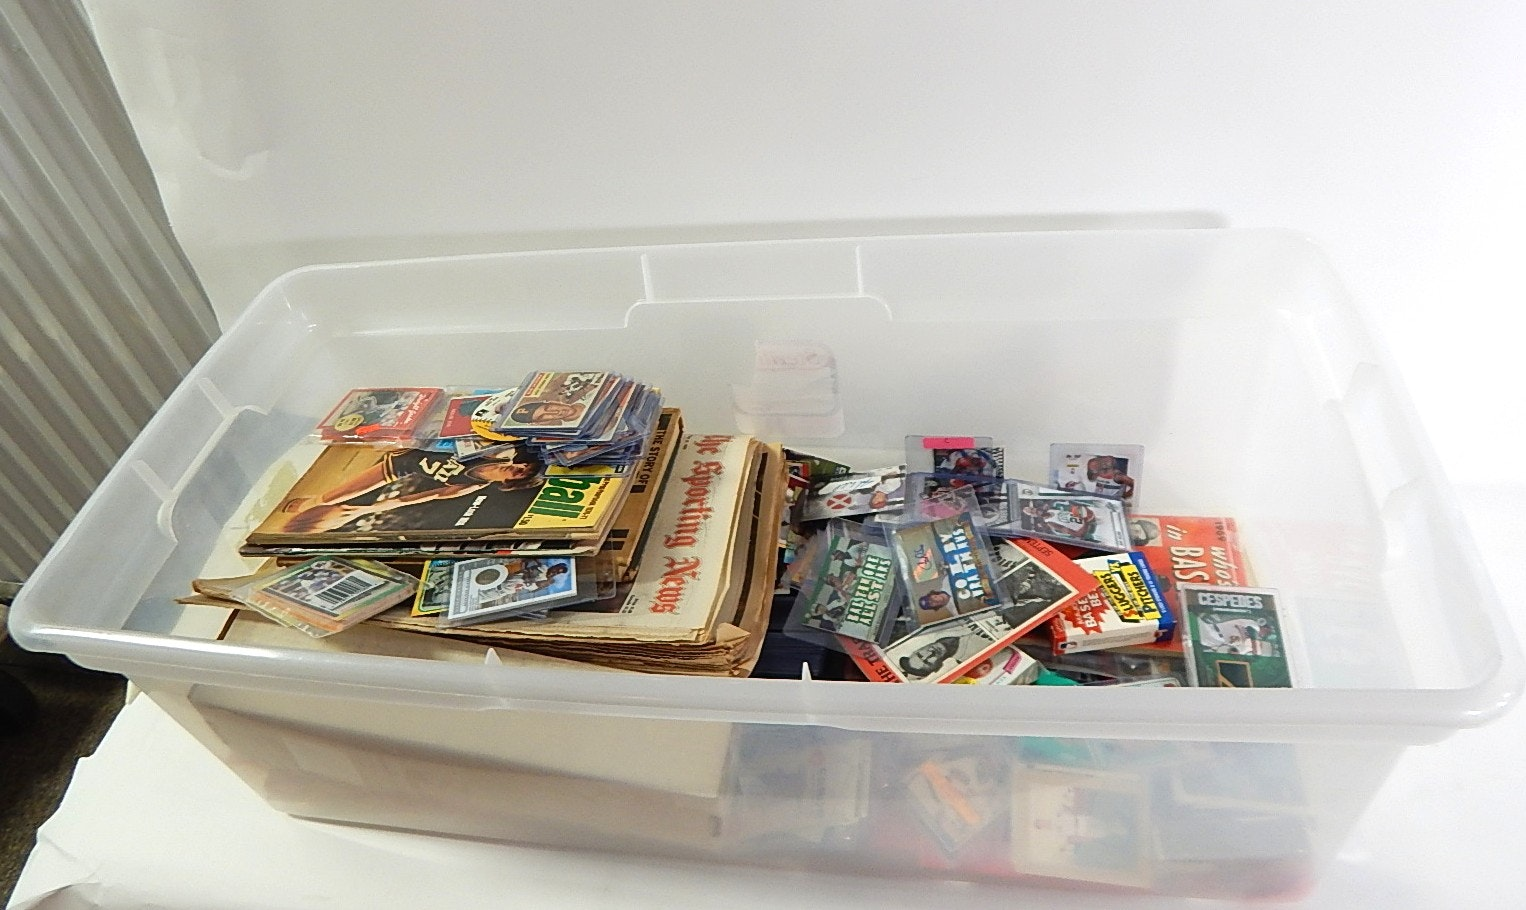 Large Tub of Sports Cards and Collectibles with Magazines, Cards, Etc.